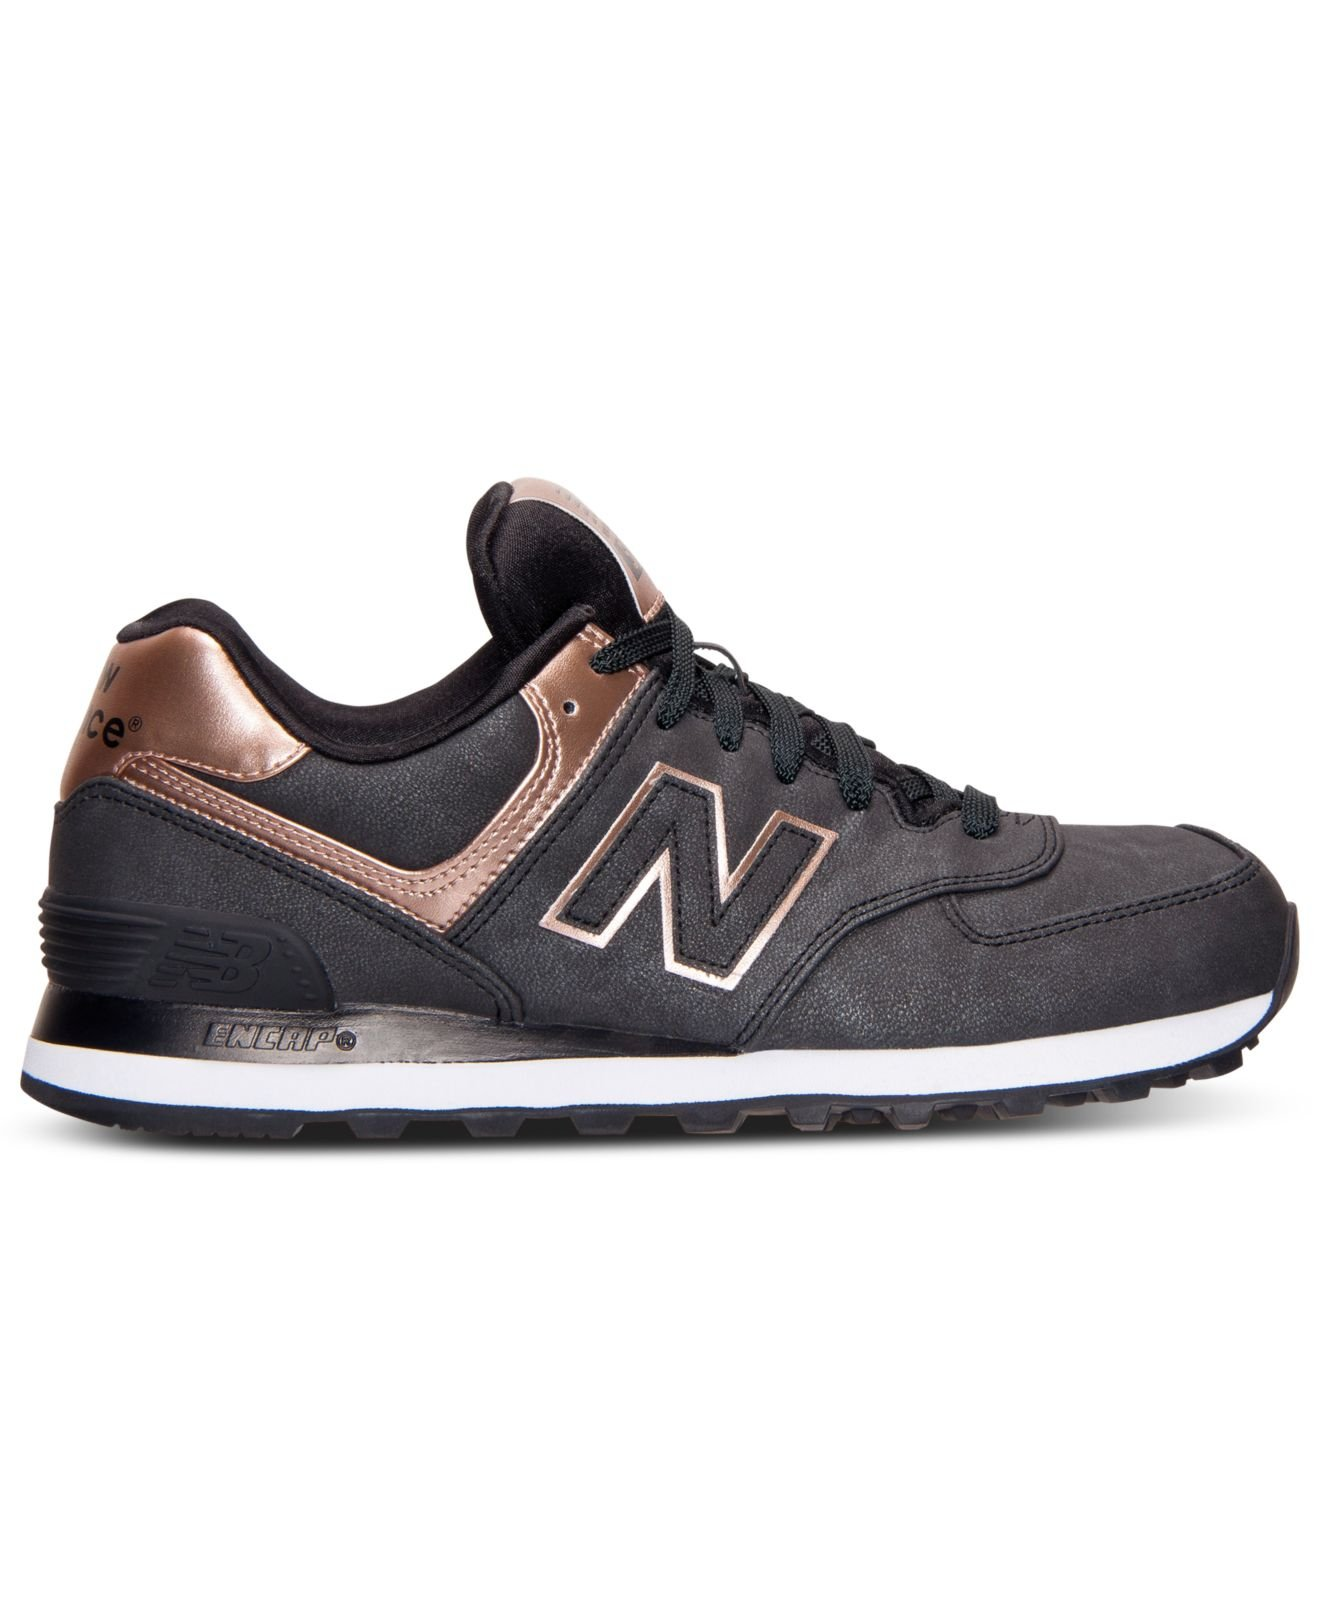 new balance rose gold metallic